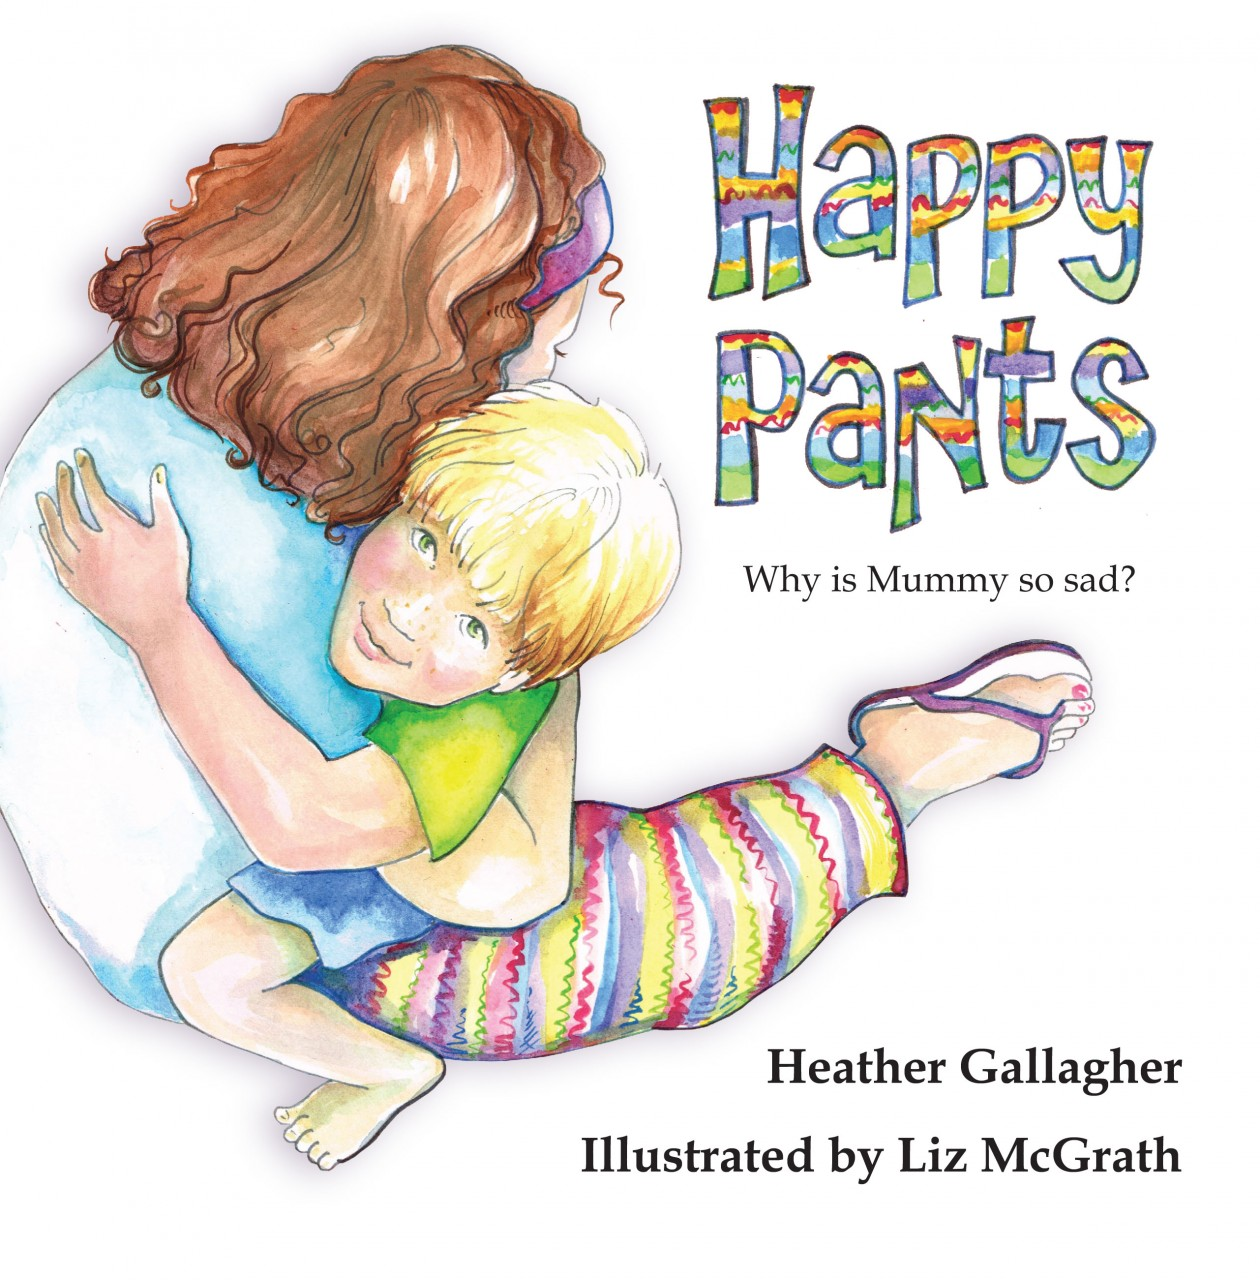 Heather Gallagher talks about Happy Pants and Mental Health